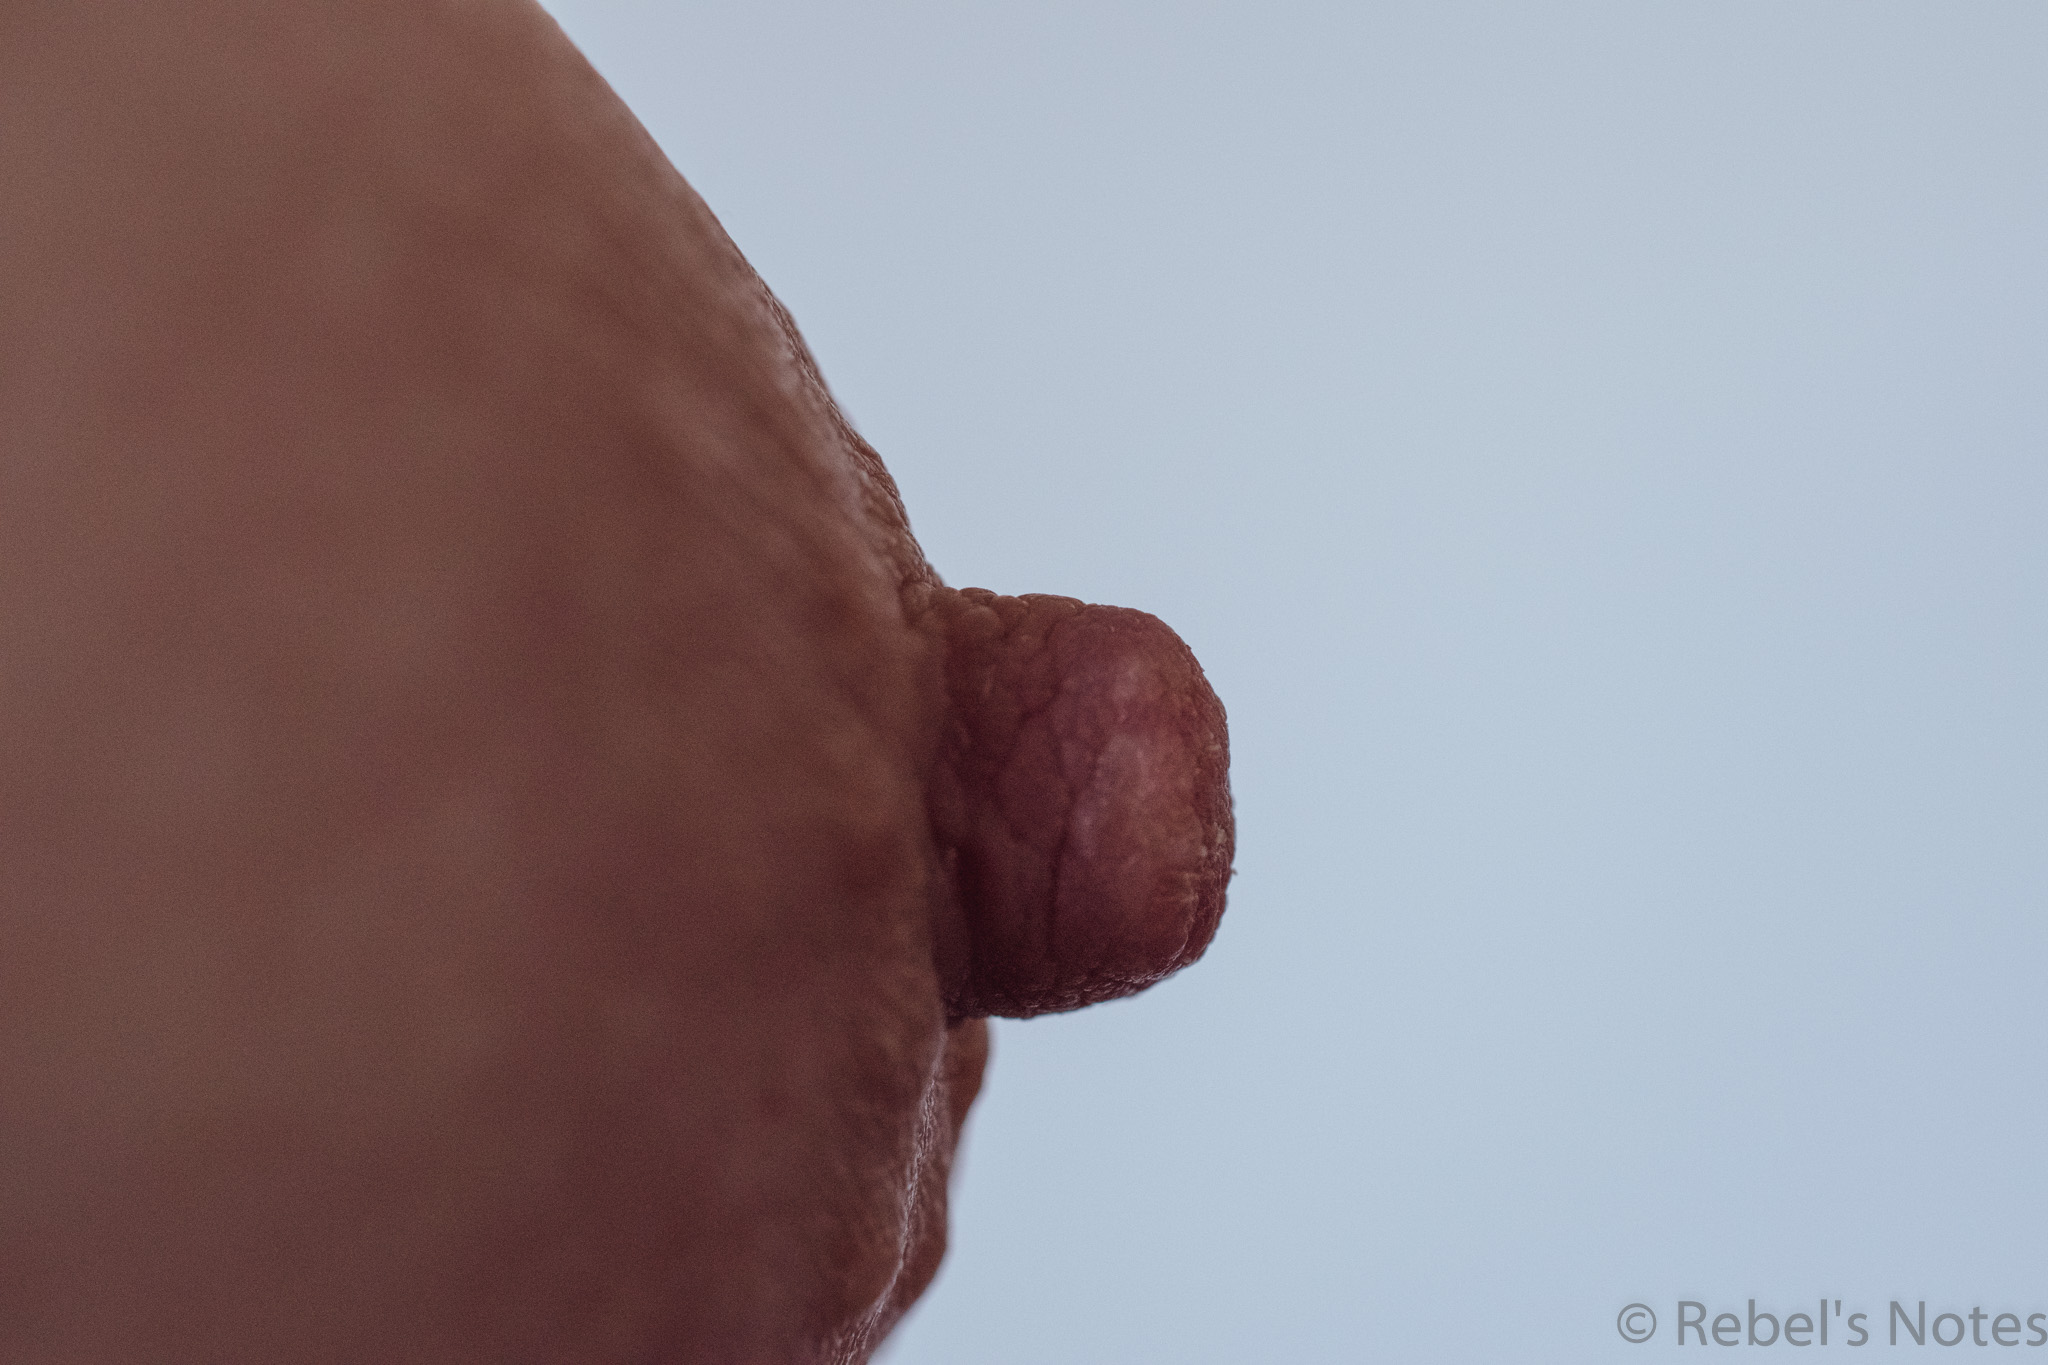 a simple image of my erect nipple, taken from the side against a light background